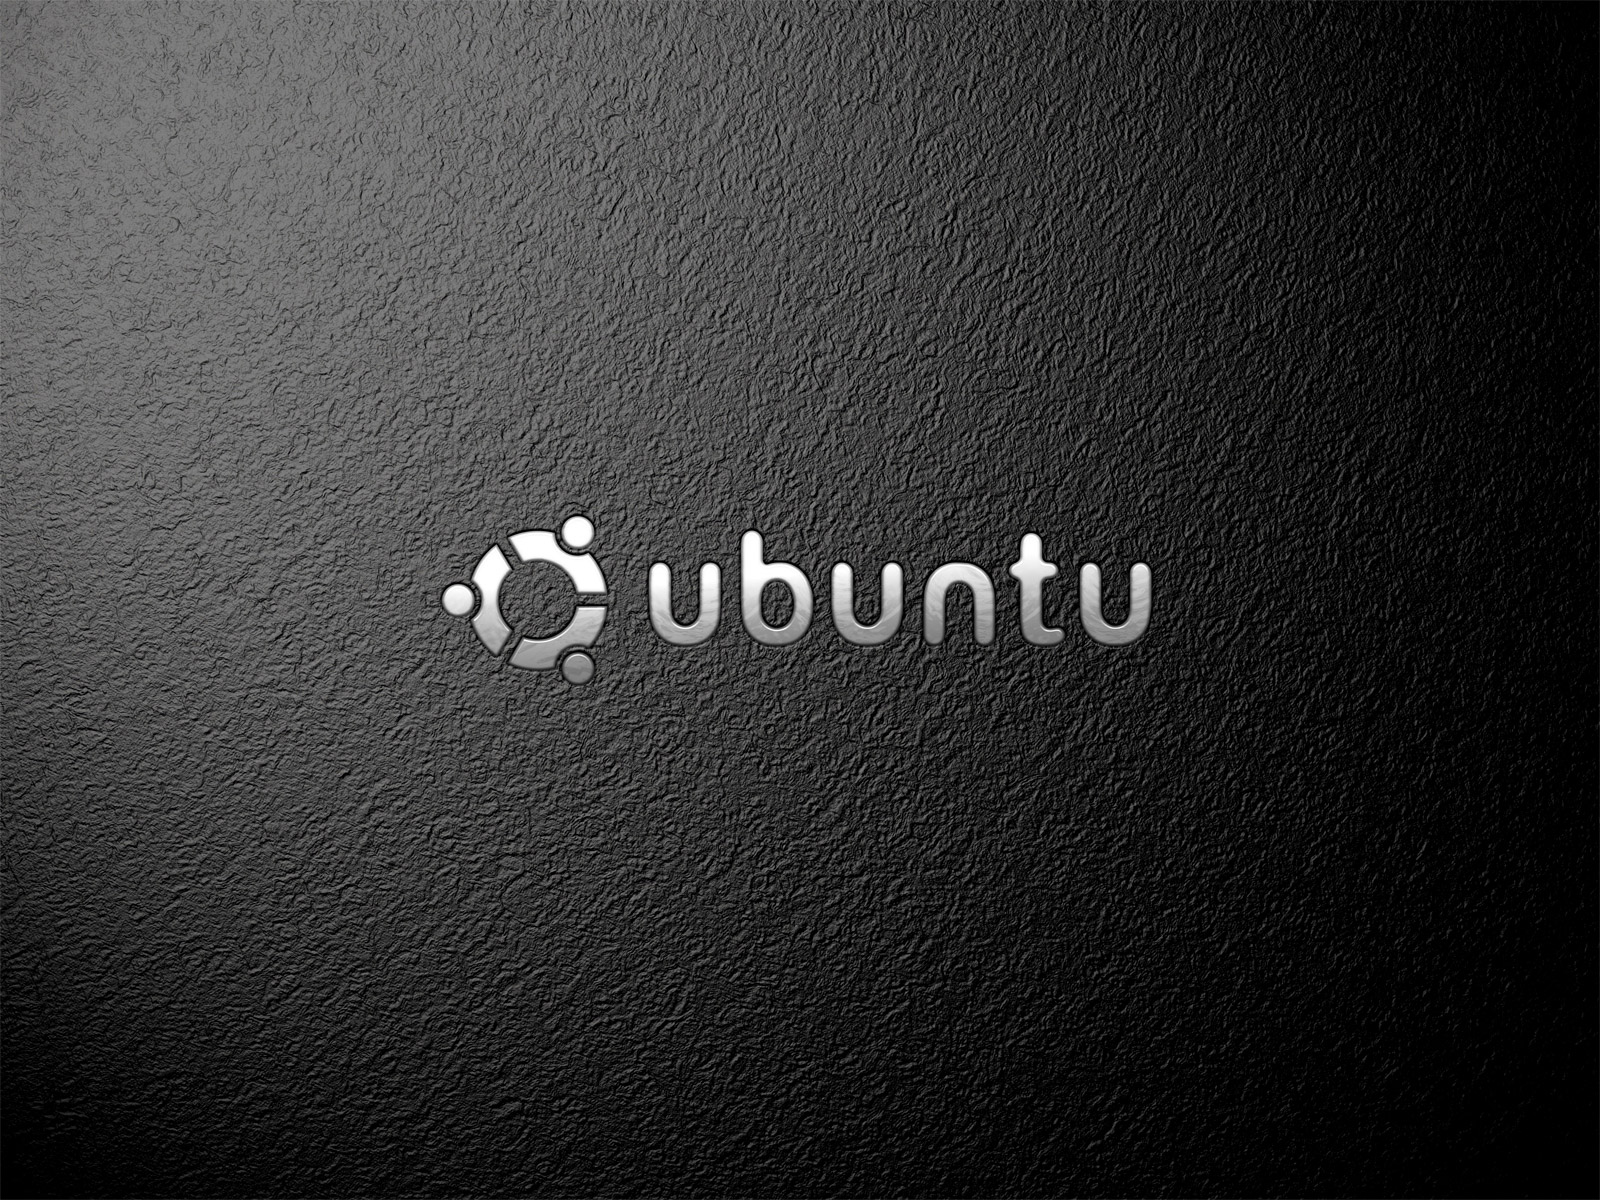 Ubuntu 3D Wallpapers HD | Wallpaper Styles